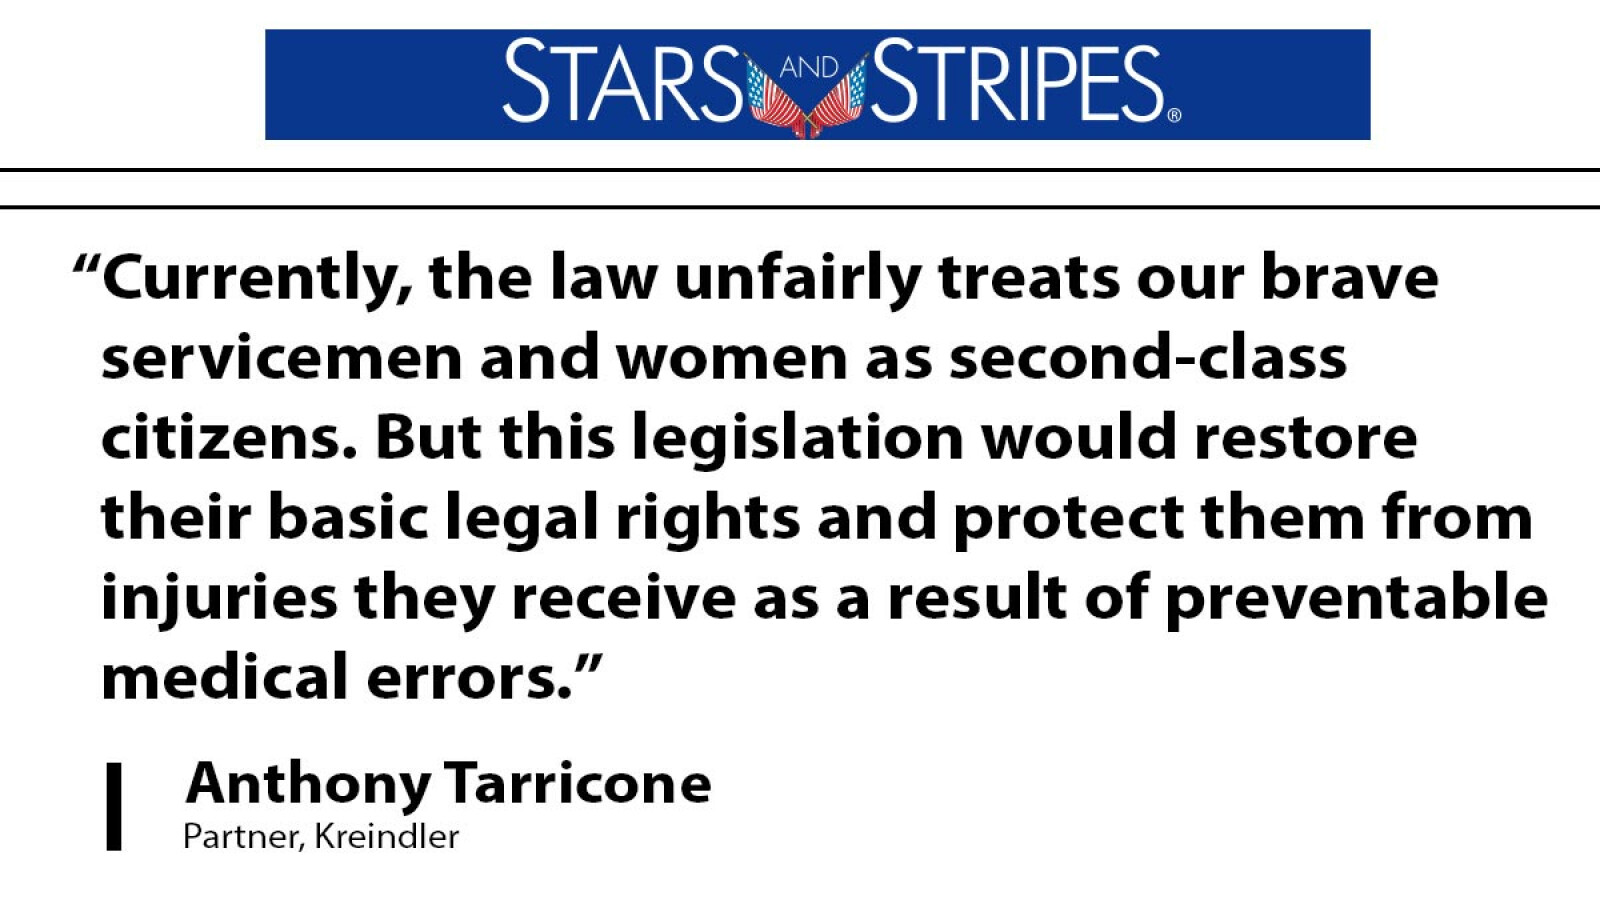 Attorney Anthony Tarricone defends service members' rights after suffering medical errors